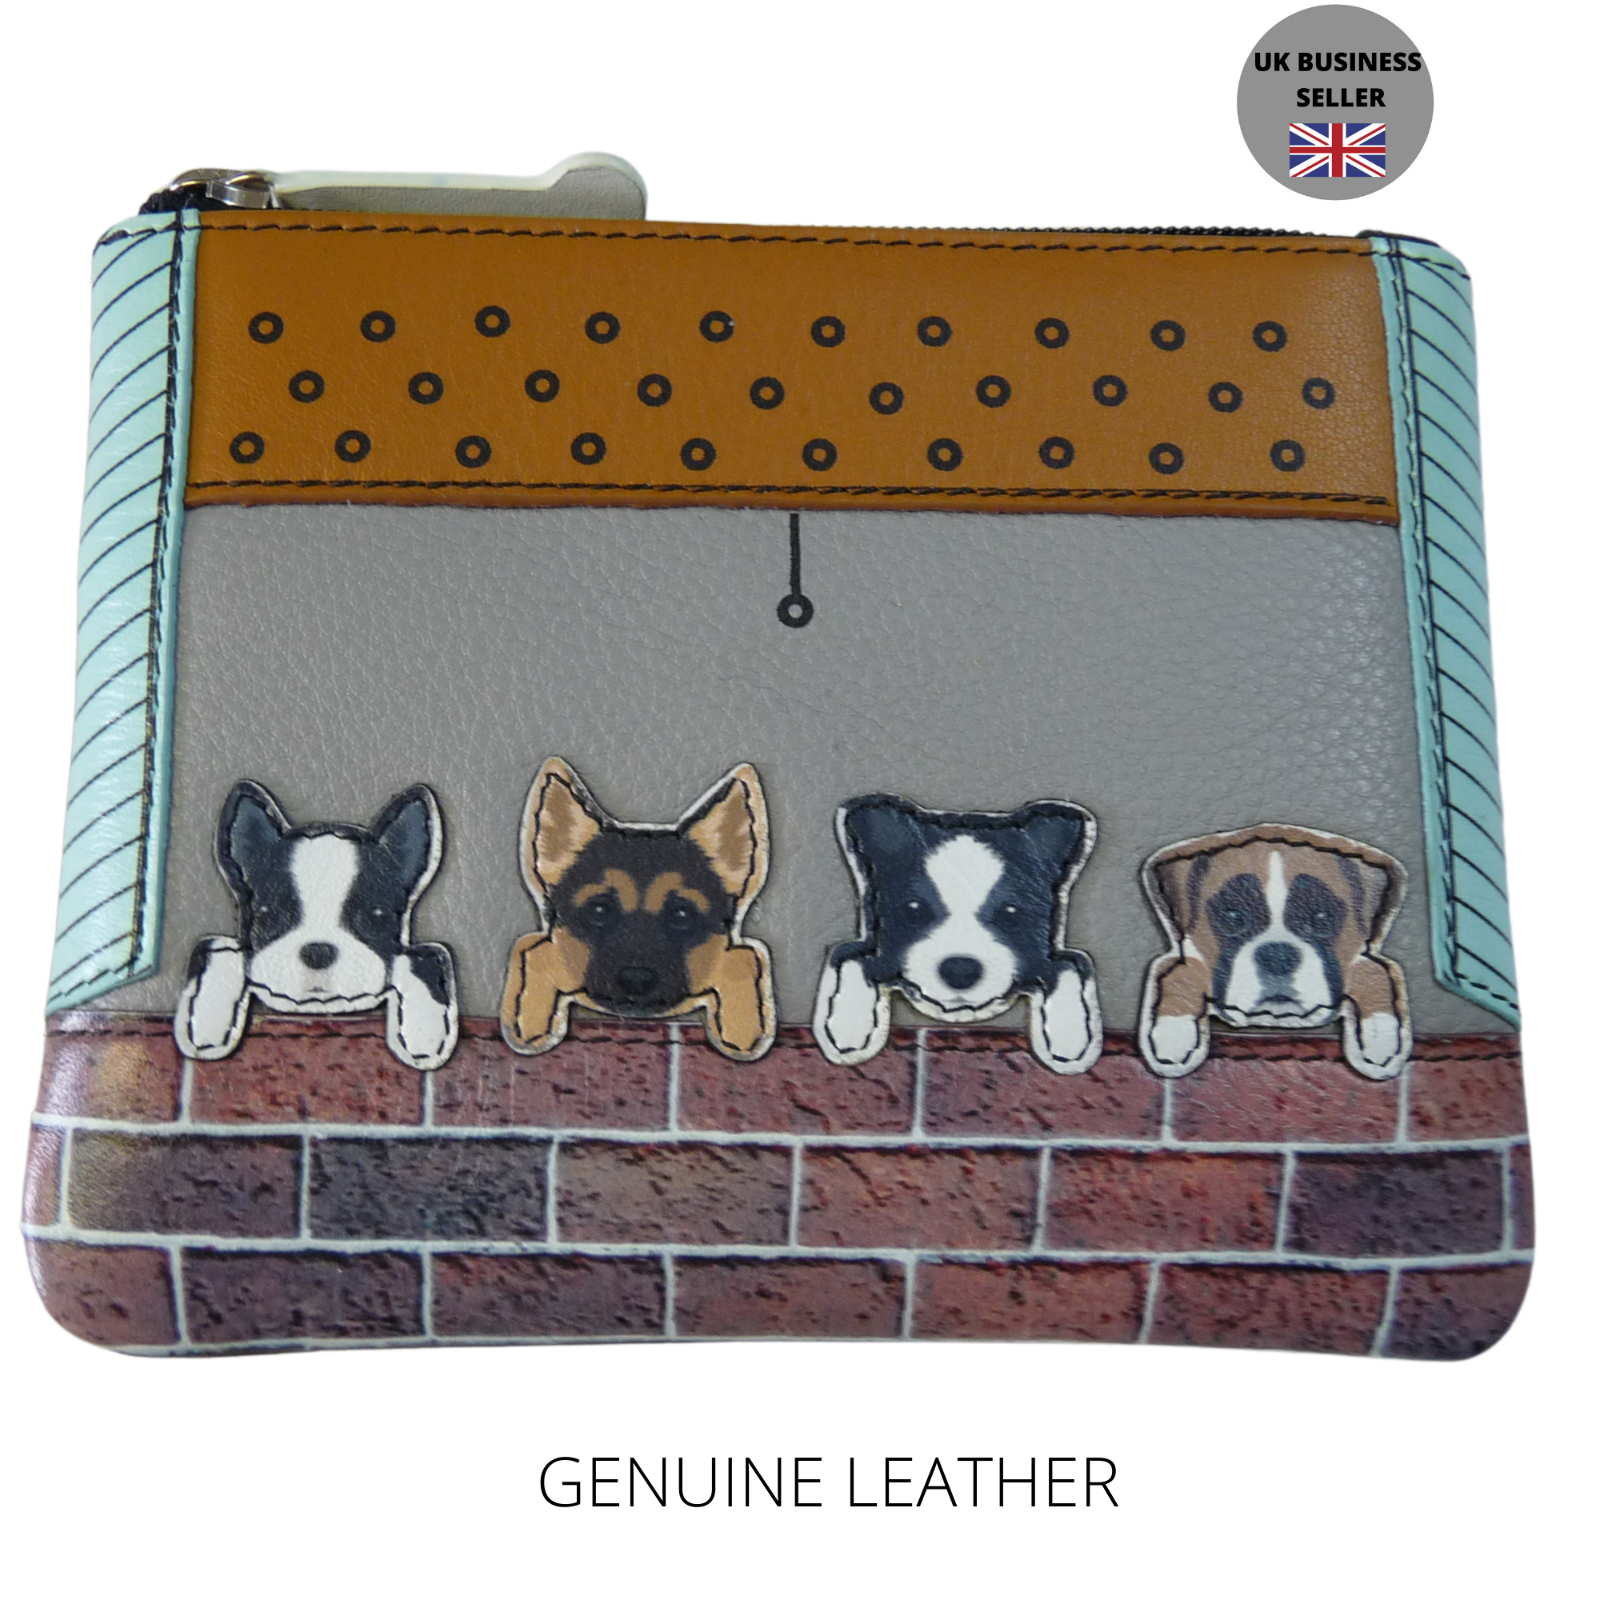 Mala Leather Dogs Coin Purse soft leather dog GERMAN SHEPHARD BOXER